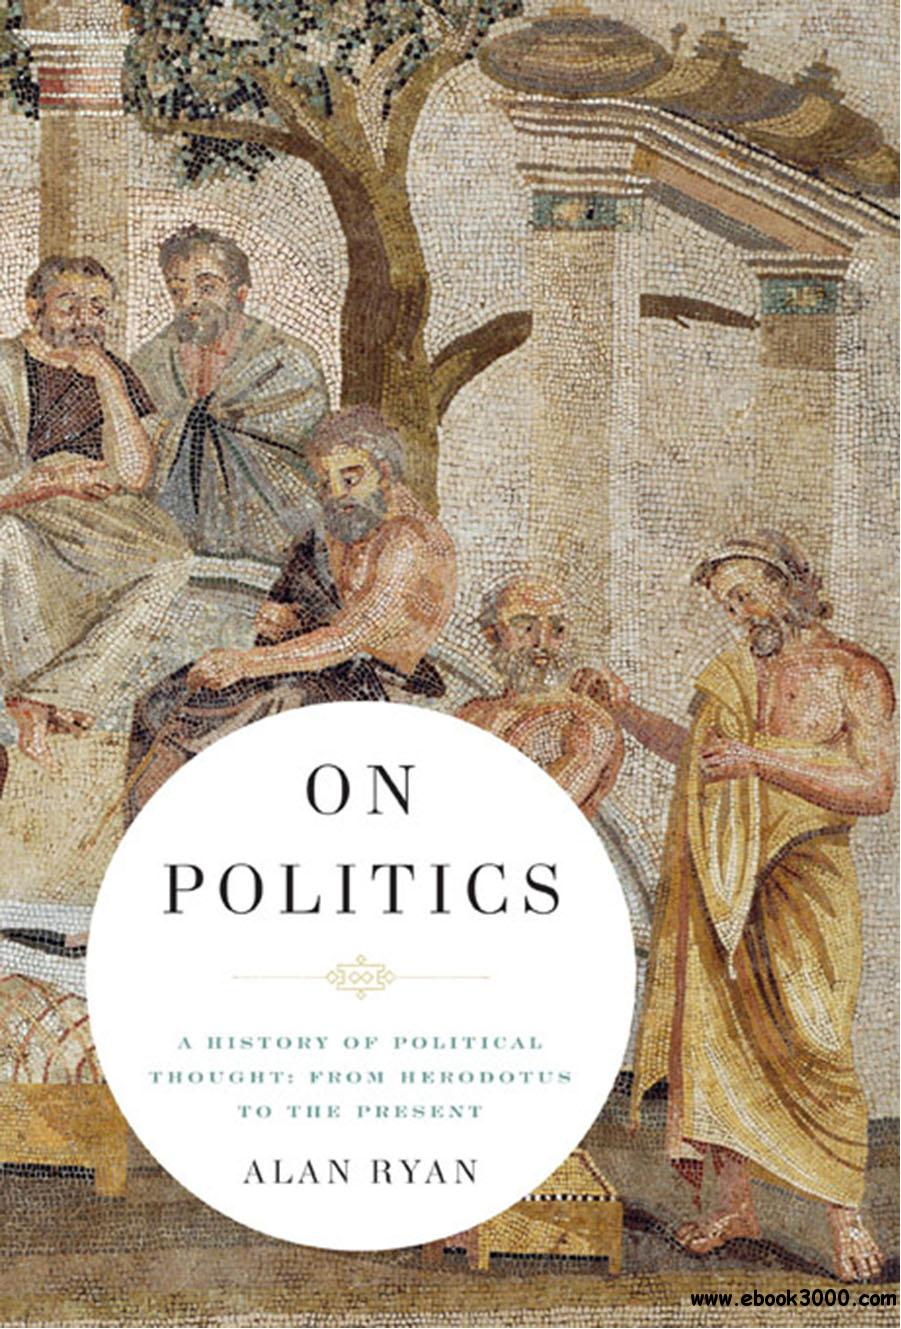 On Politics: A History of Political Thought: From Herodotus to the Present free download